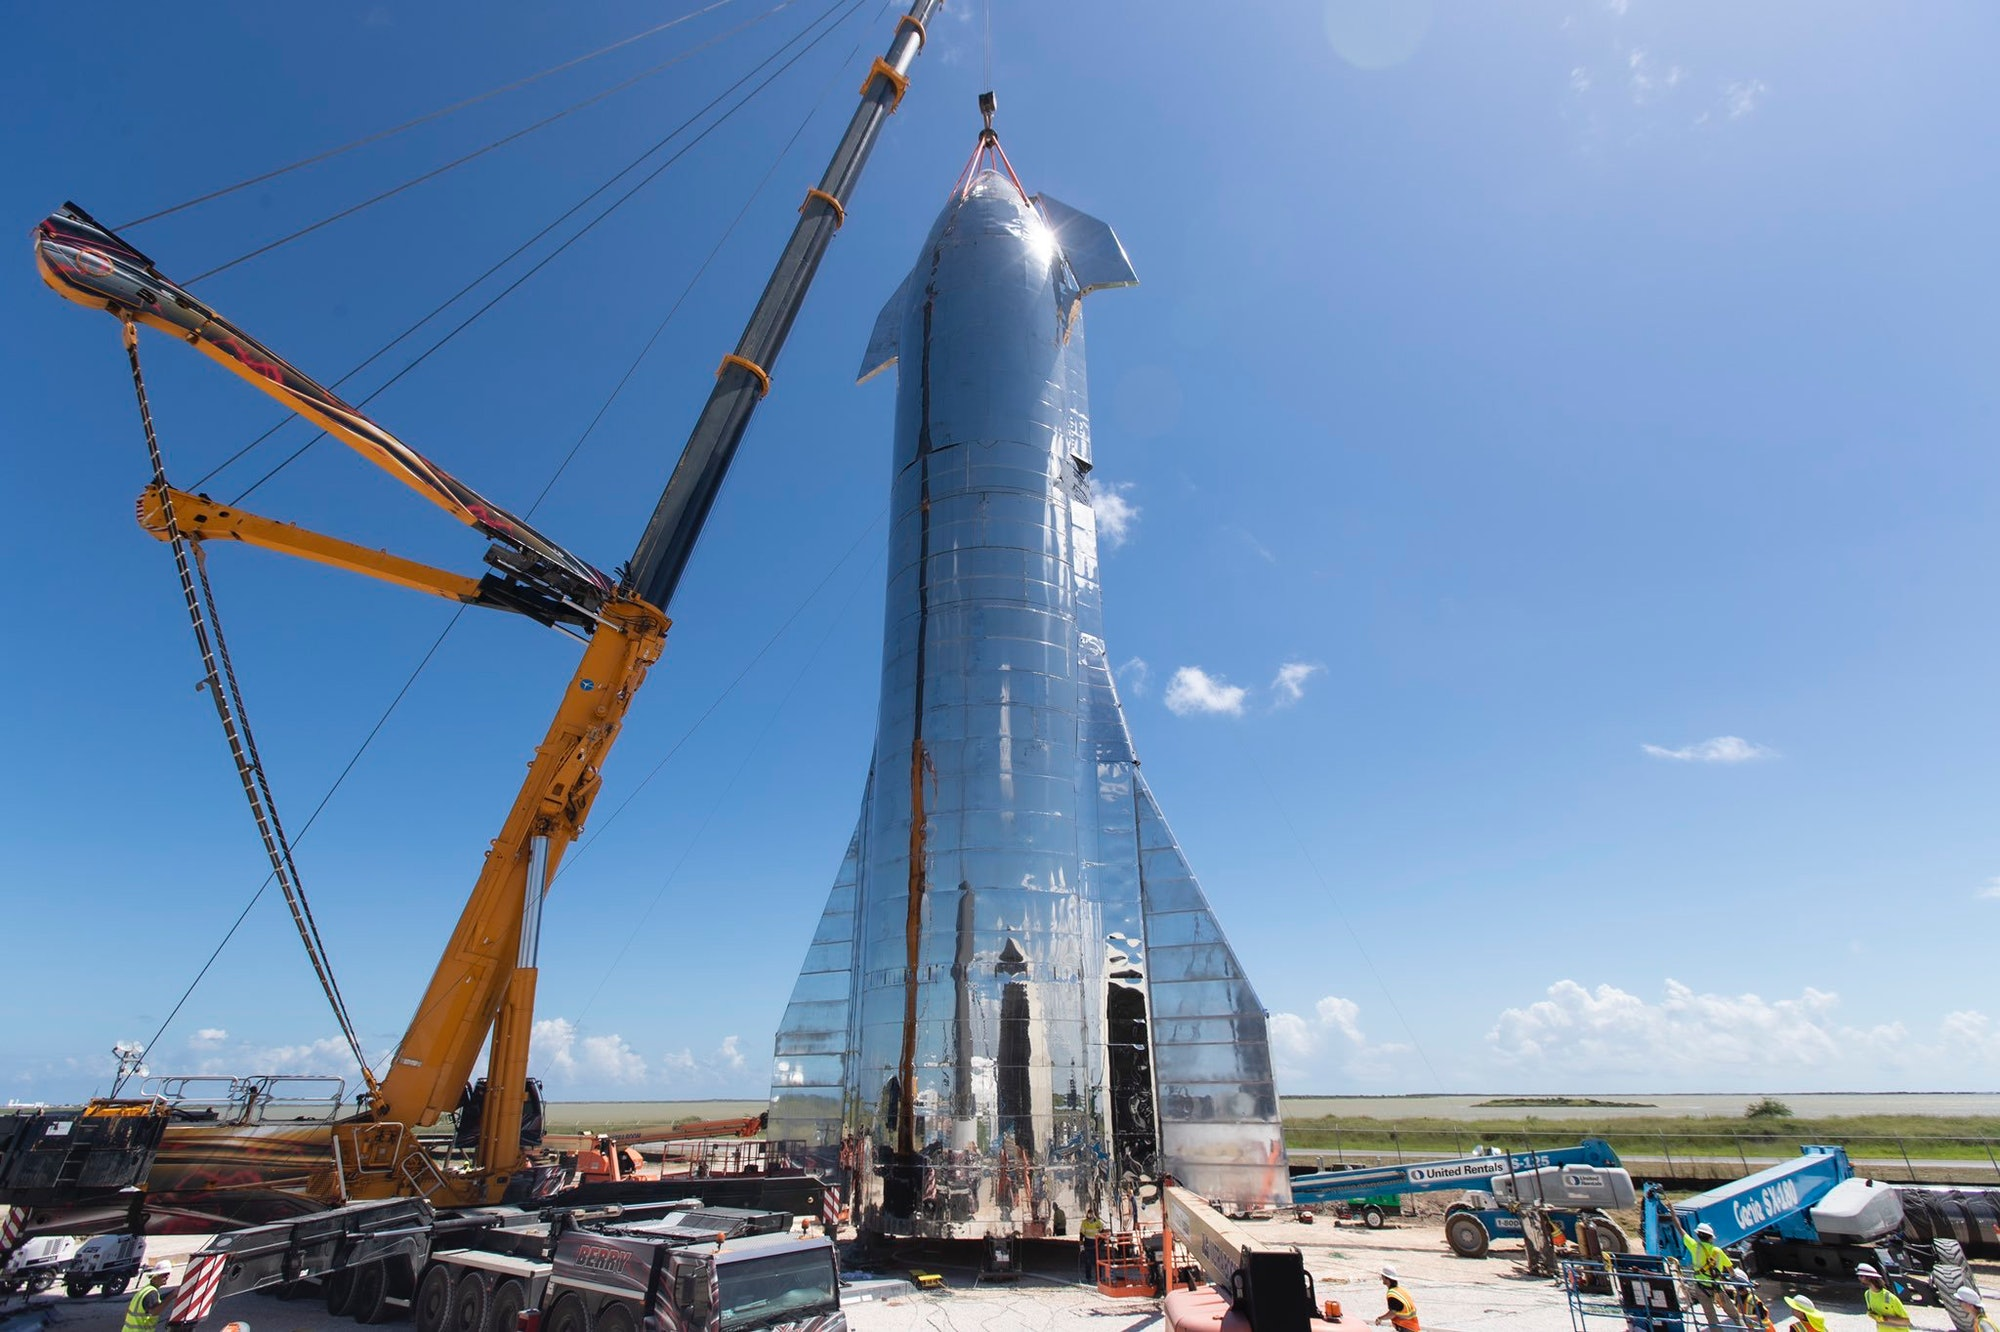 """""""Starship halves being joined."""" Elon Musk shared this photo on his Twitter account on Friday, September 27, 2019. More information is expected about the project on Saturday night, September 28, 2019."""